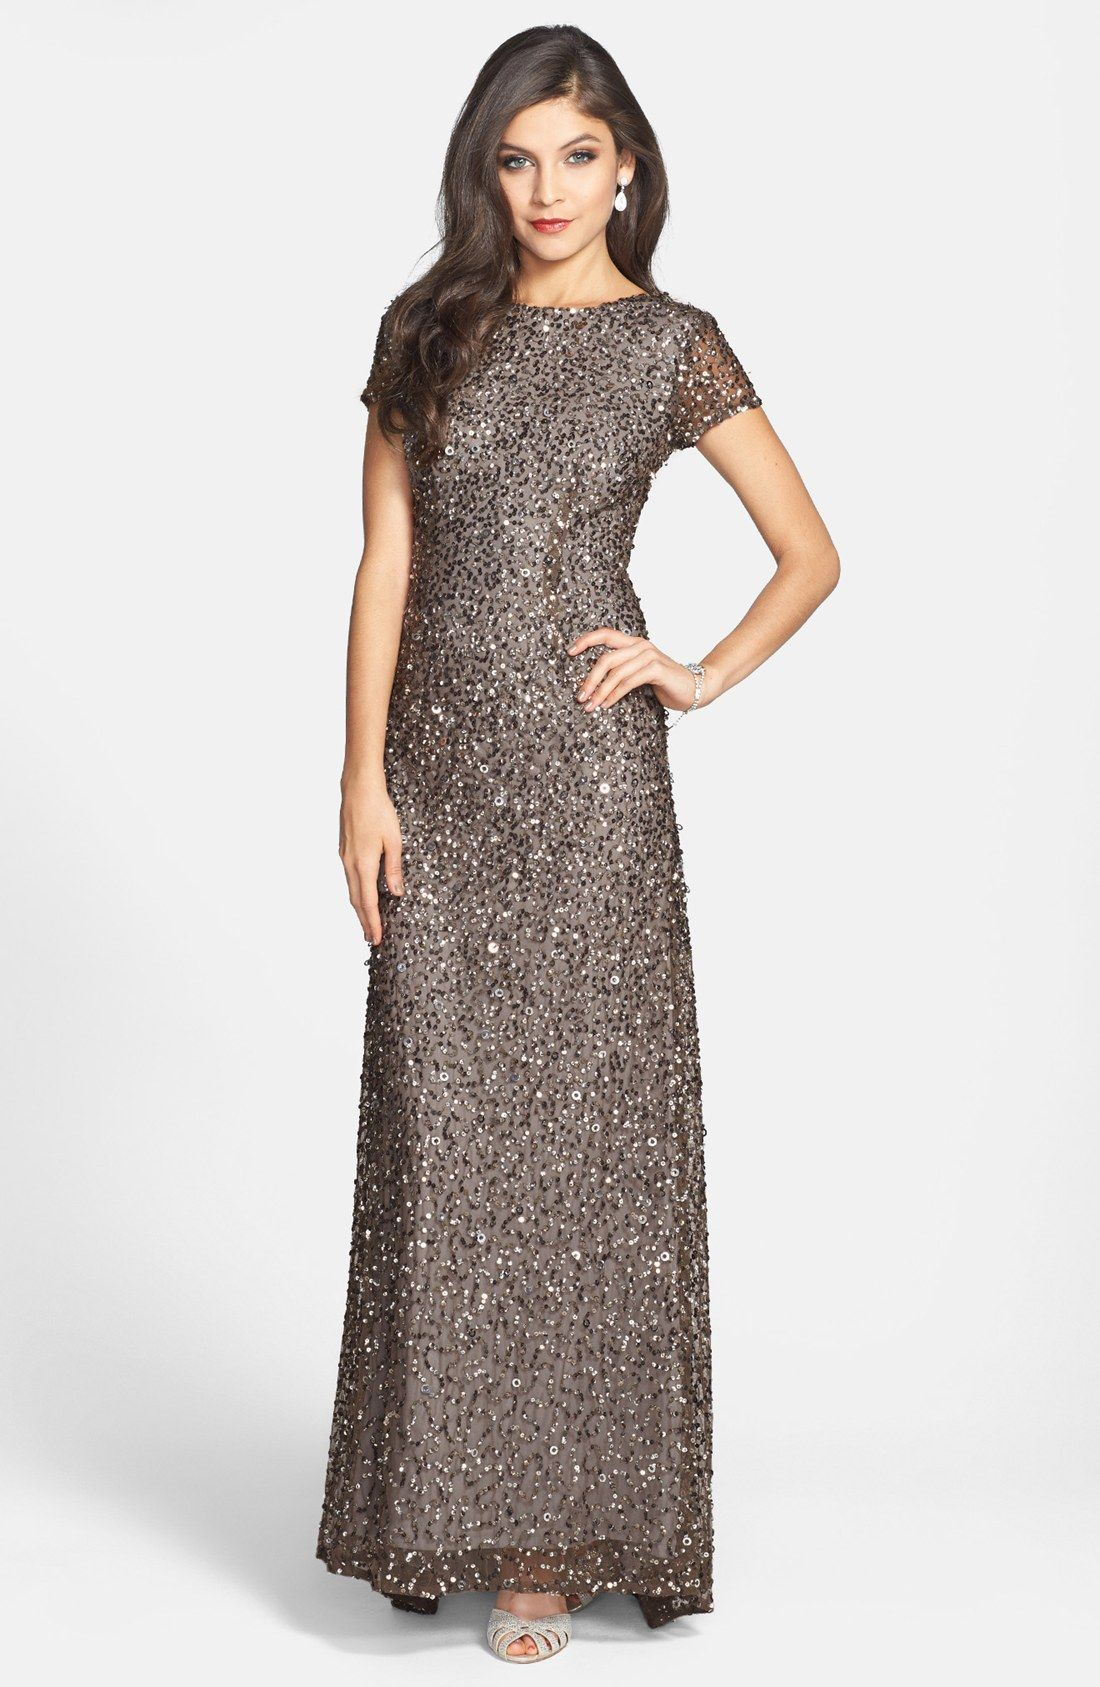 Adrianna papell gown short sleeve deco - Short Sleeve Sequin Mesh Gown